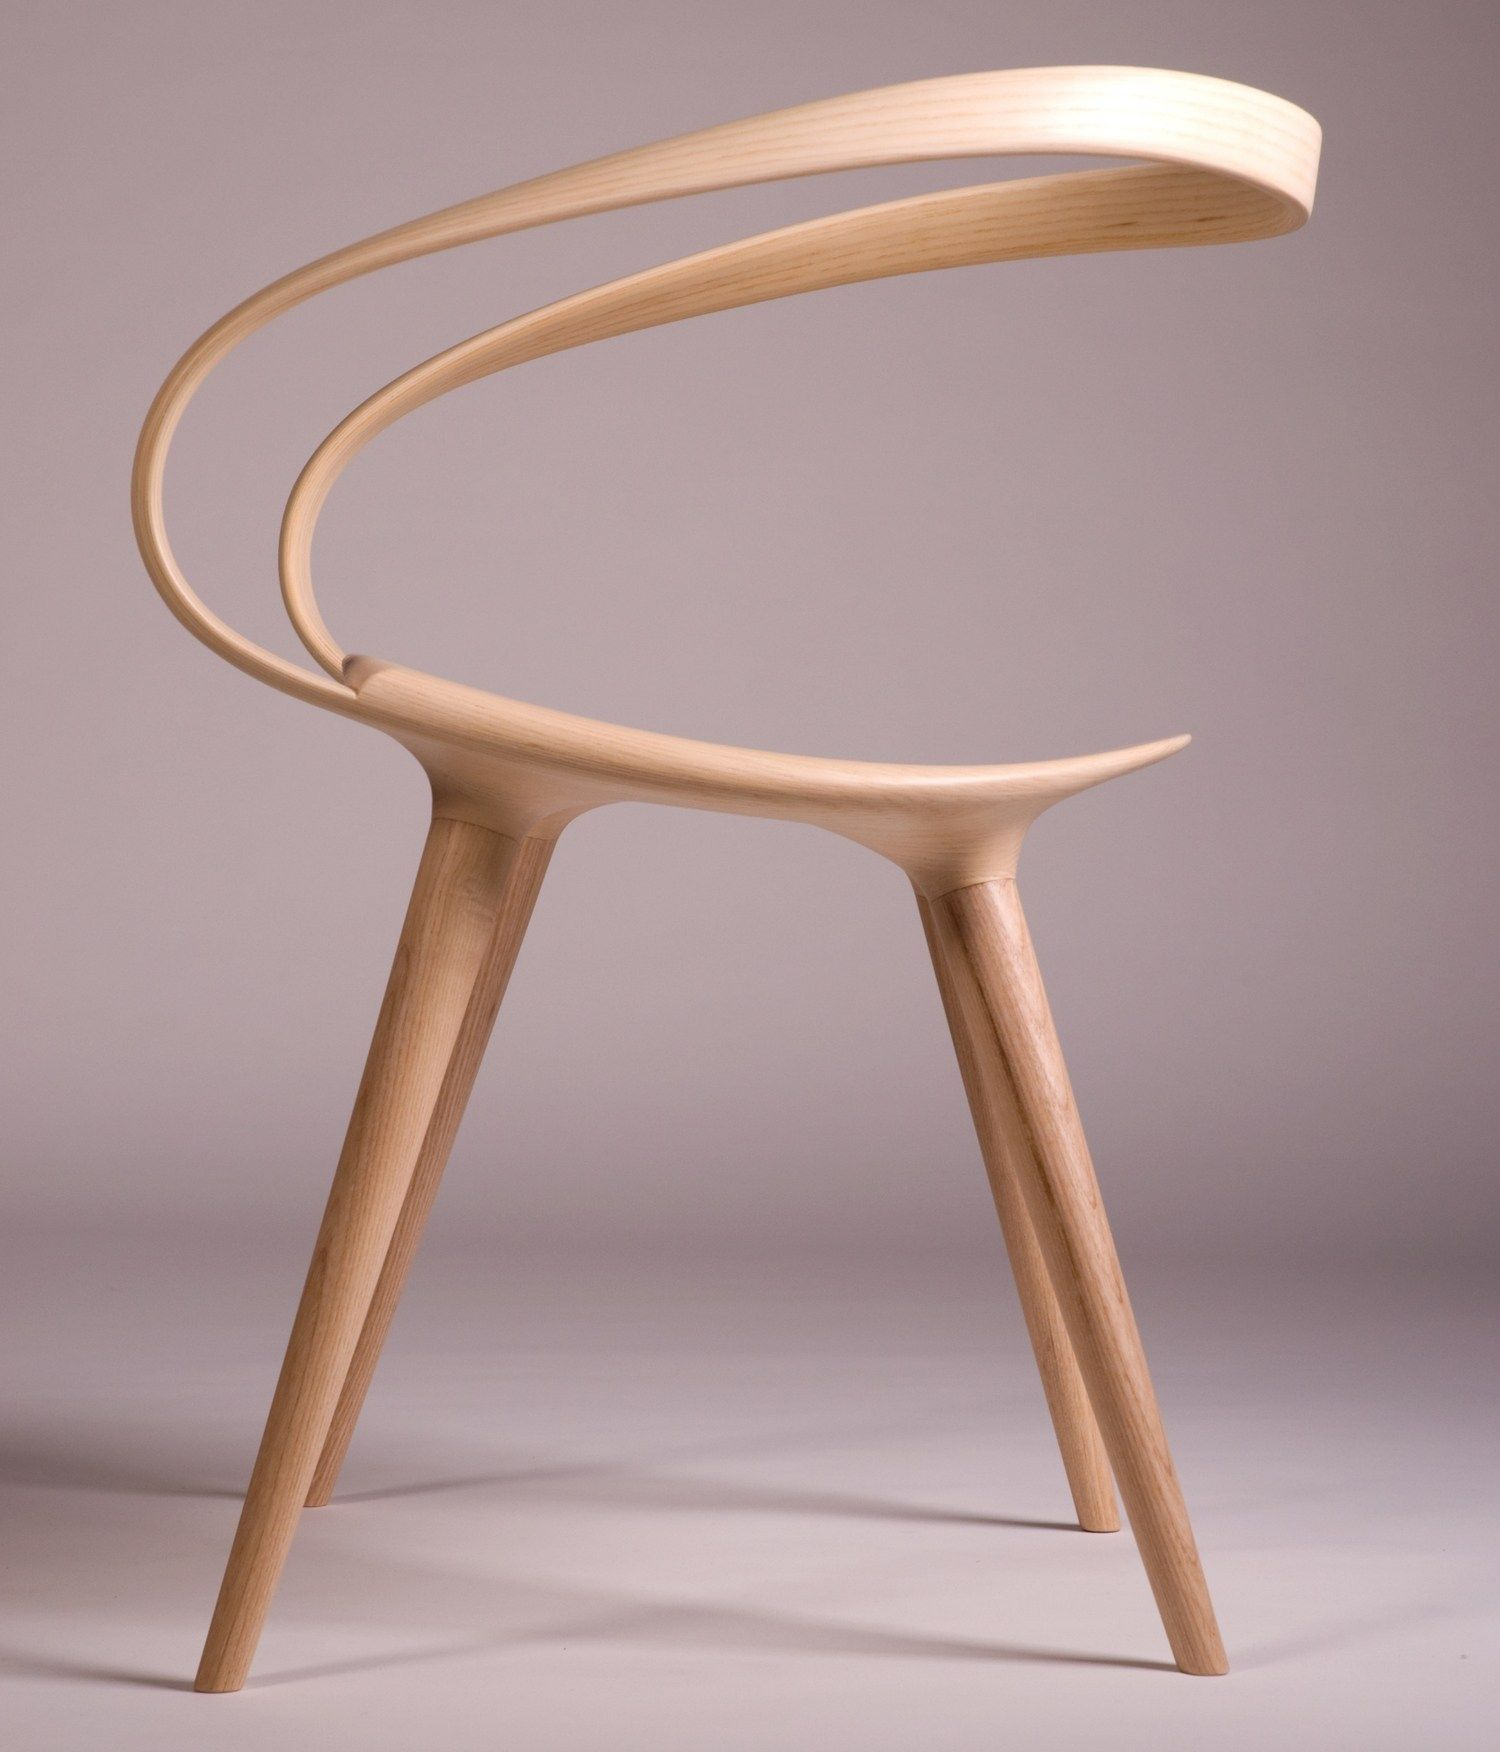 This Insane Bent Plywood Chair is Inspired by Modern Bicycle Design is part of Minimalist furniture - There's more than a handful of reasons why the humble bicycle is an object of obsession for many an industrial designer or engineer  Aside from the zillions of proportion variations, material combinations and CMF studies that go into the design process, it is also one of the few objects that can be designed for users